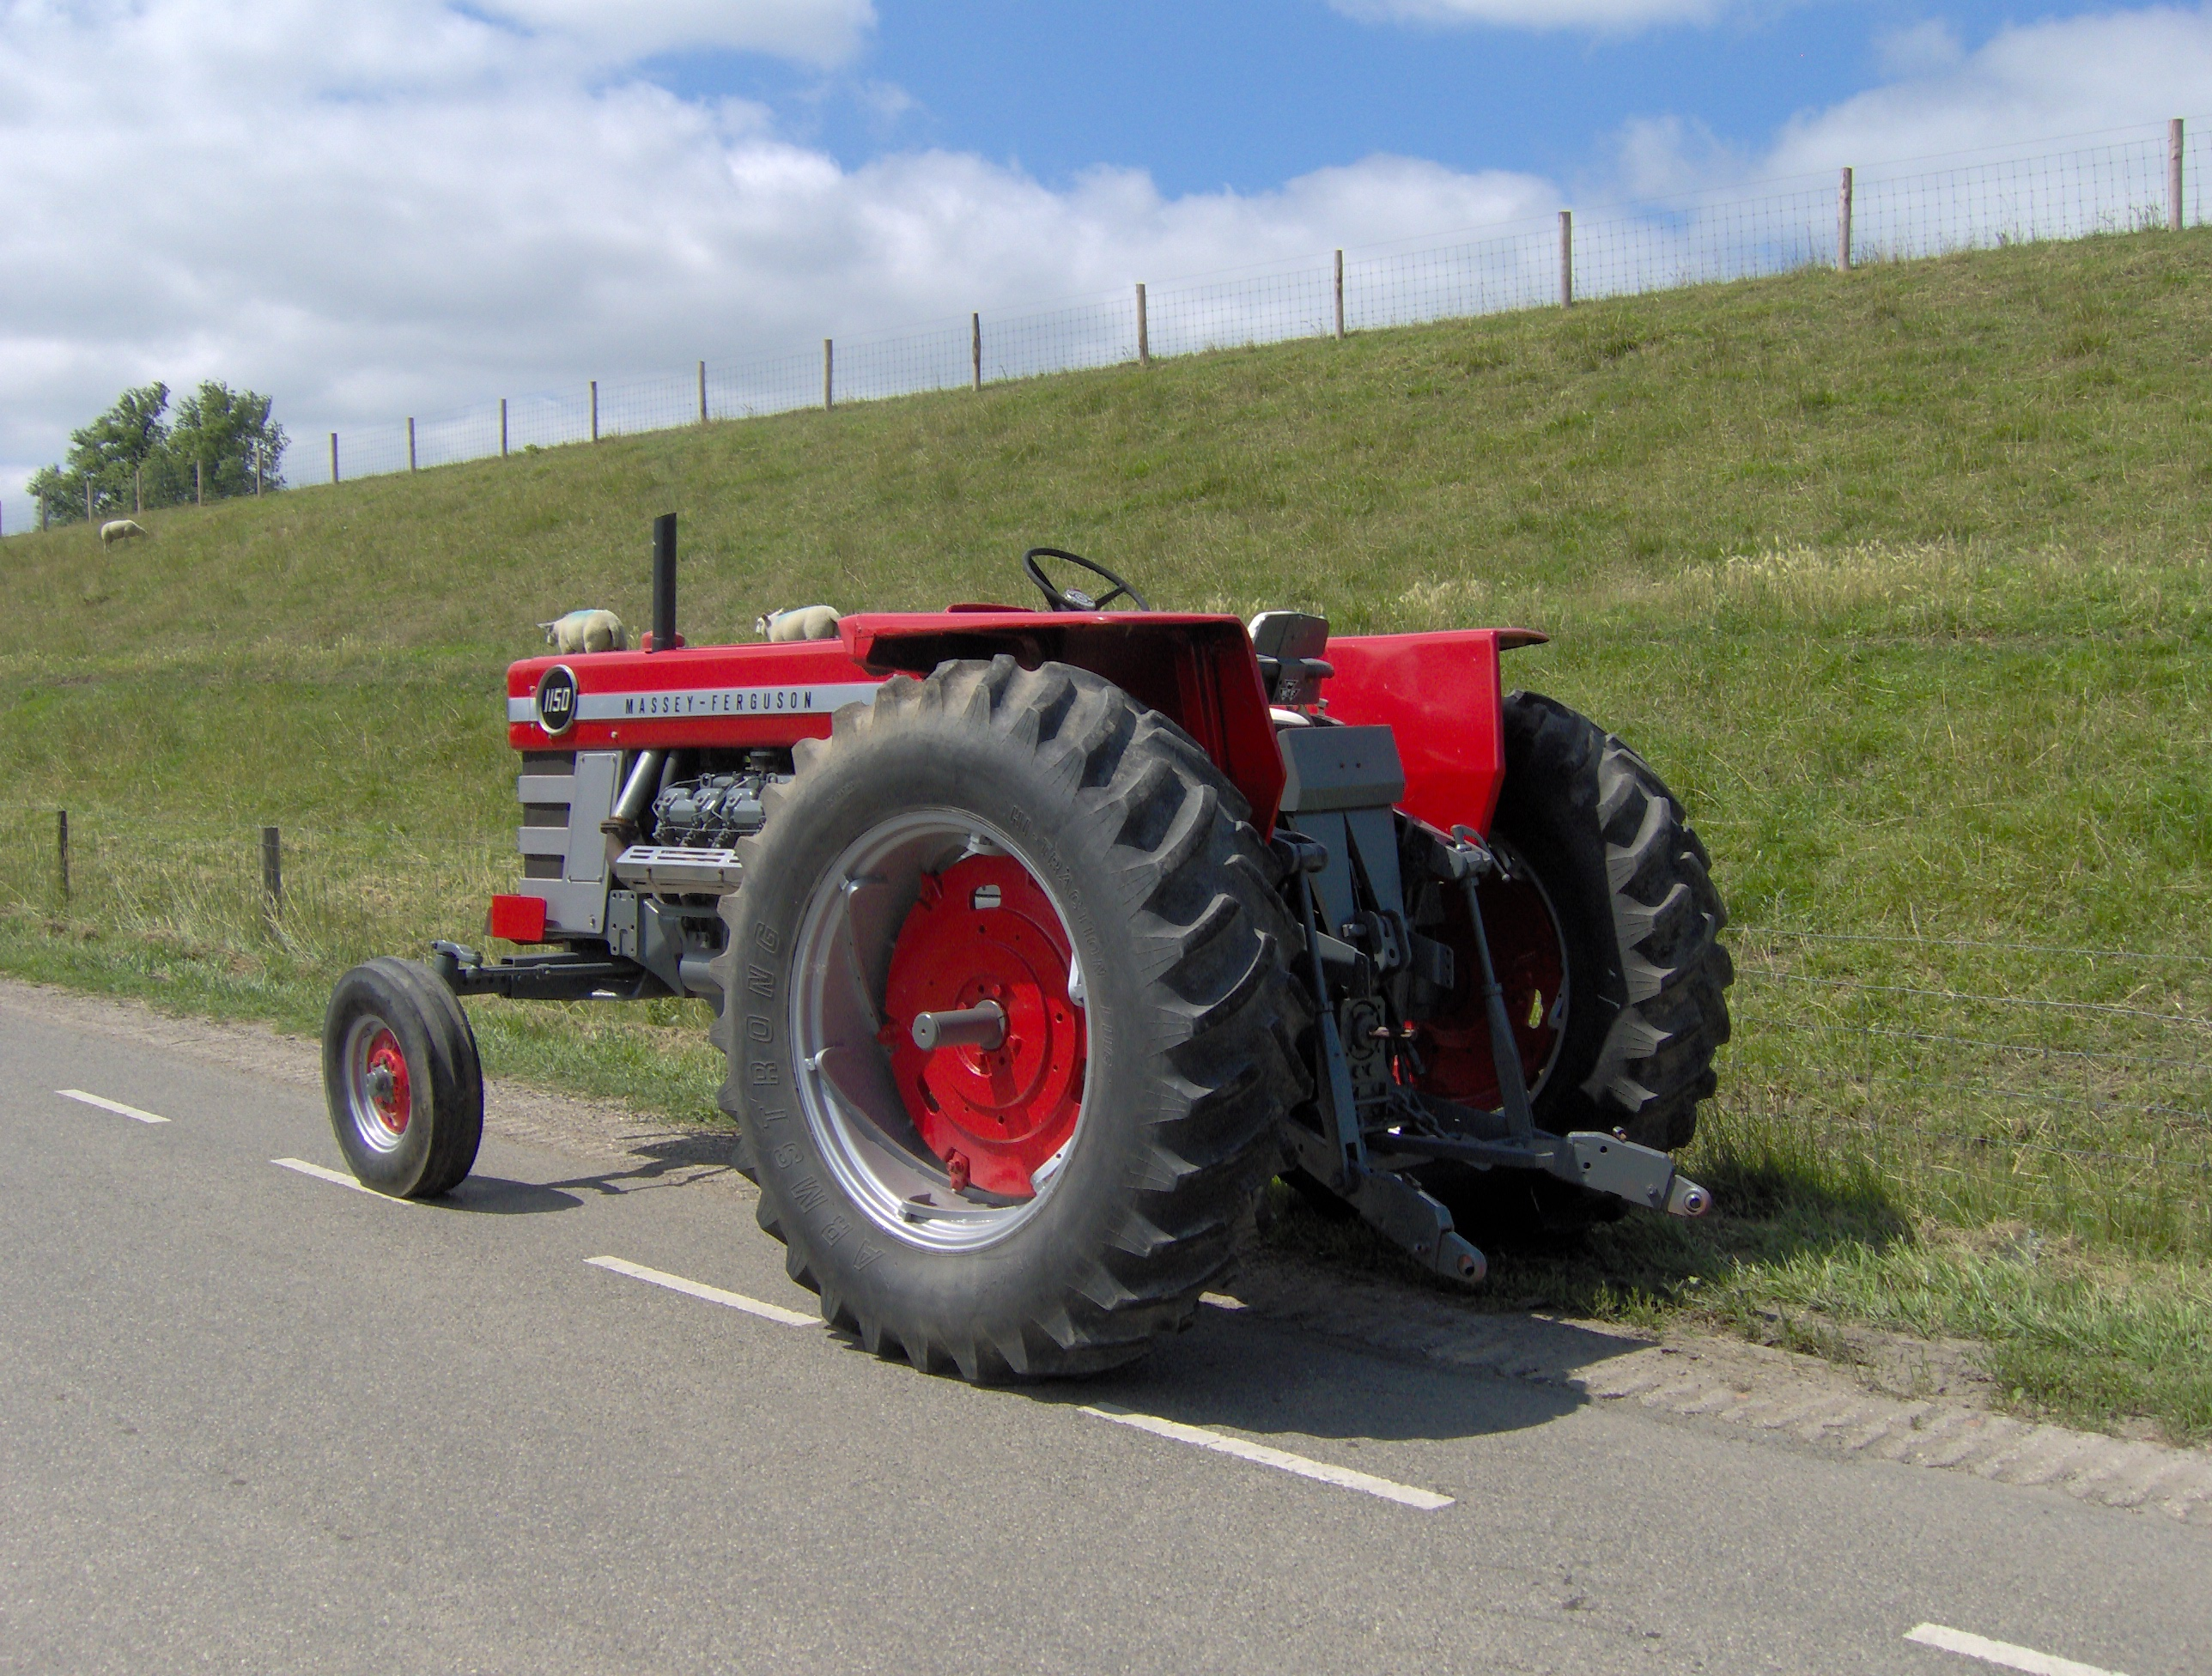 Massey-ferguson 1150 Amazing Photo on OpenISO ORG - Collection of